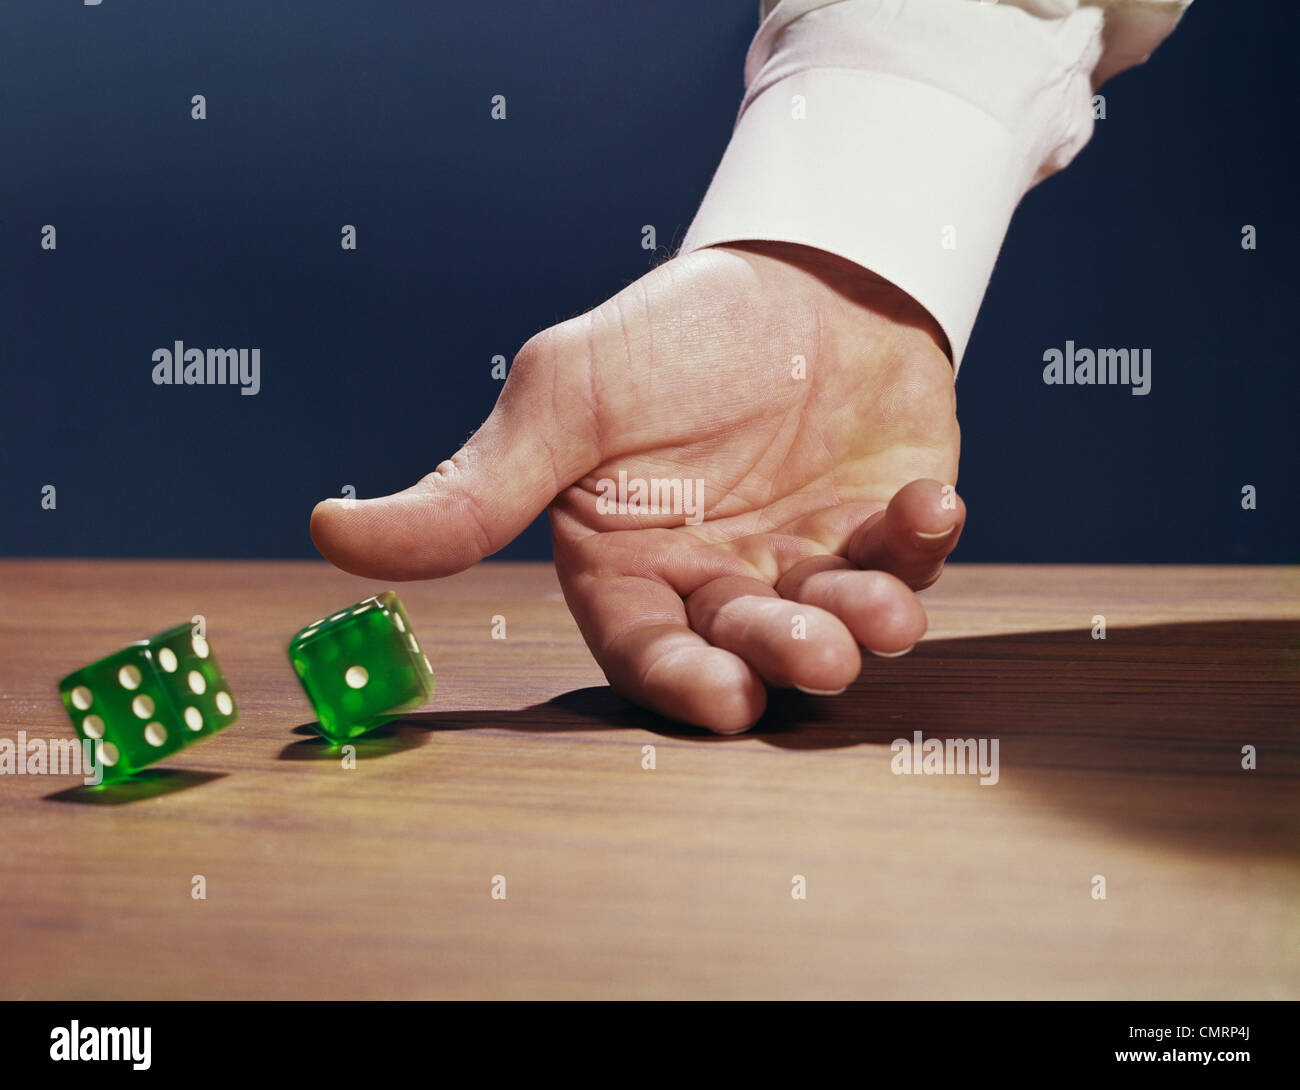 ROLE DICE HAND RETRO 1960 1960s - Stock Image